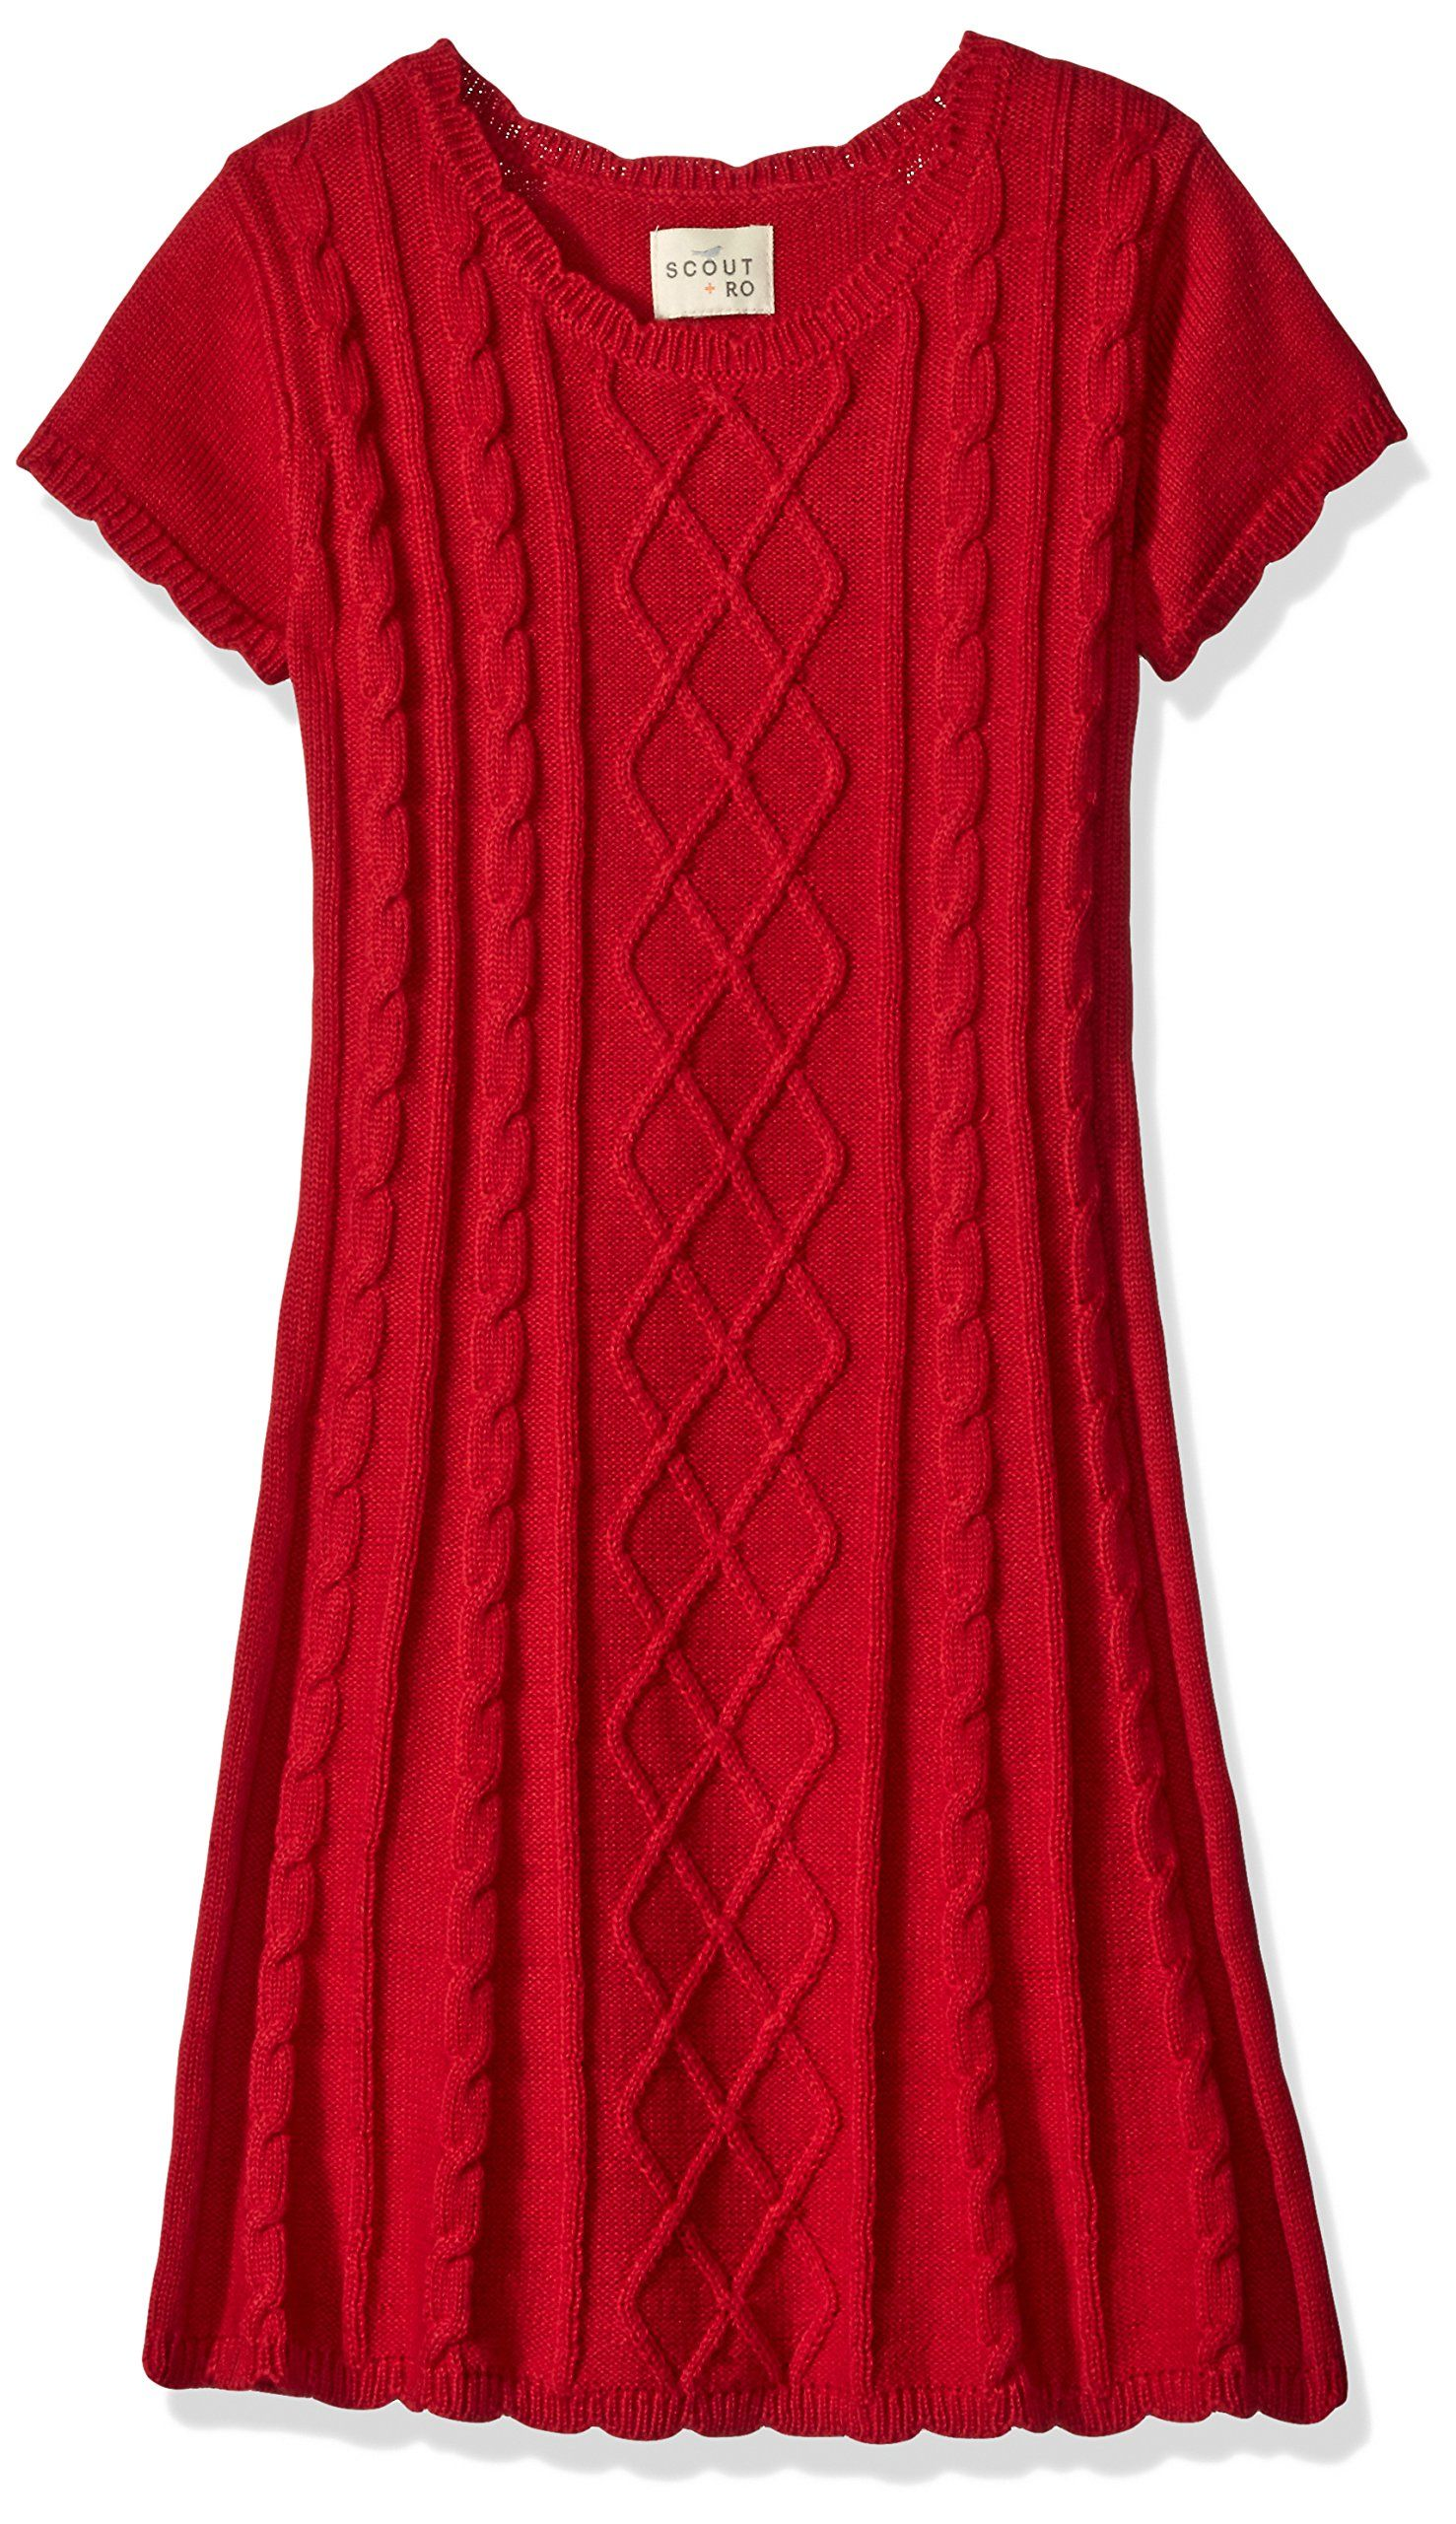 Scout Ro Little Girls Cable Knit Sweater Dress Red 4 Short Sleeve Sweater Dress Featuring Cable Knit Front Cable Knit Sweater Dress Clothes Sweater Dress [ 2560 x 1477 Pixel ]